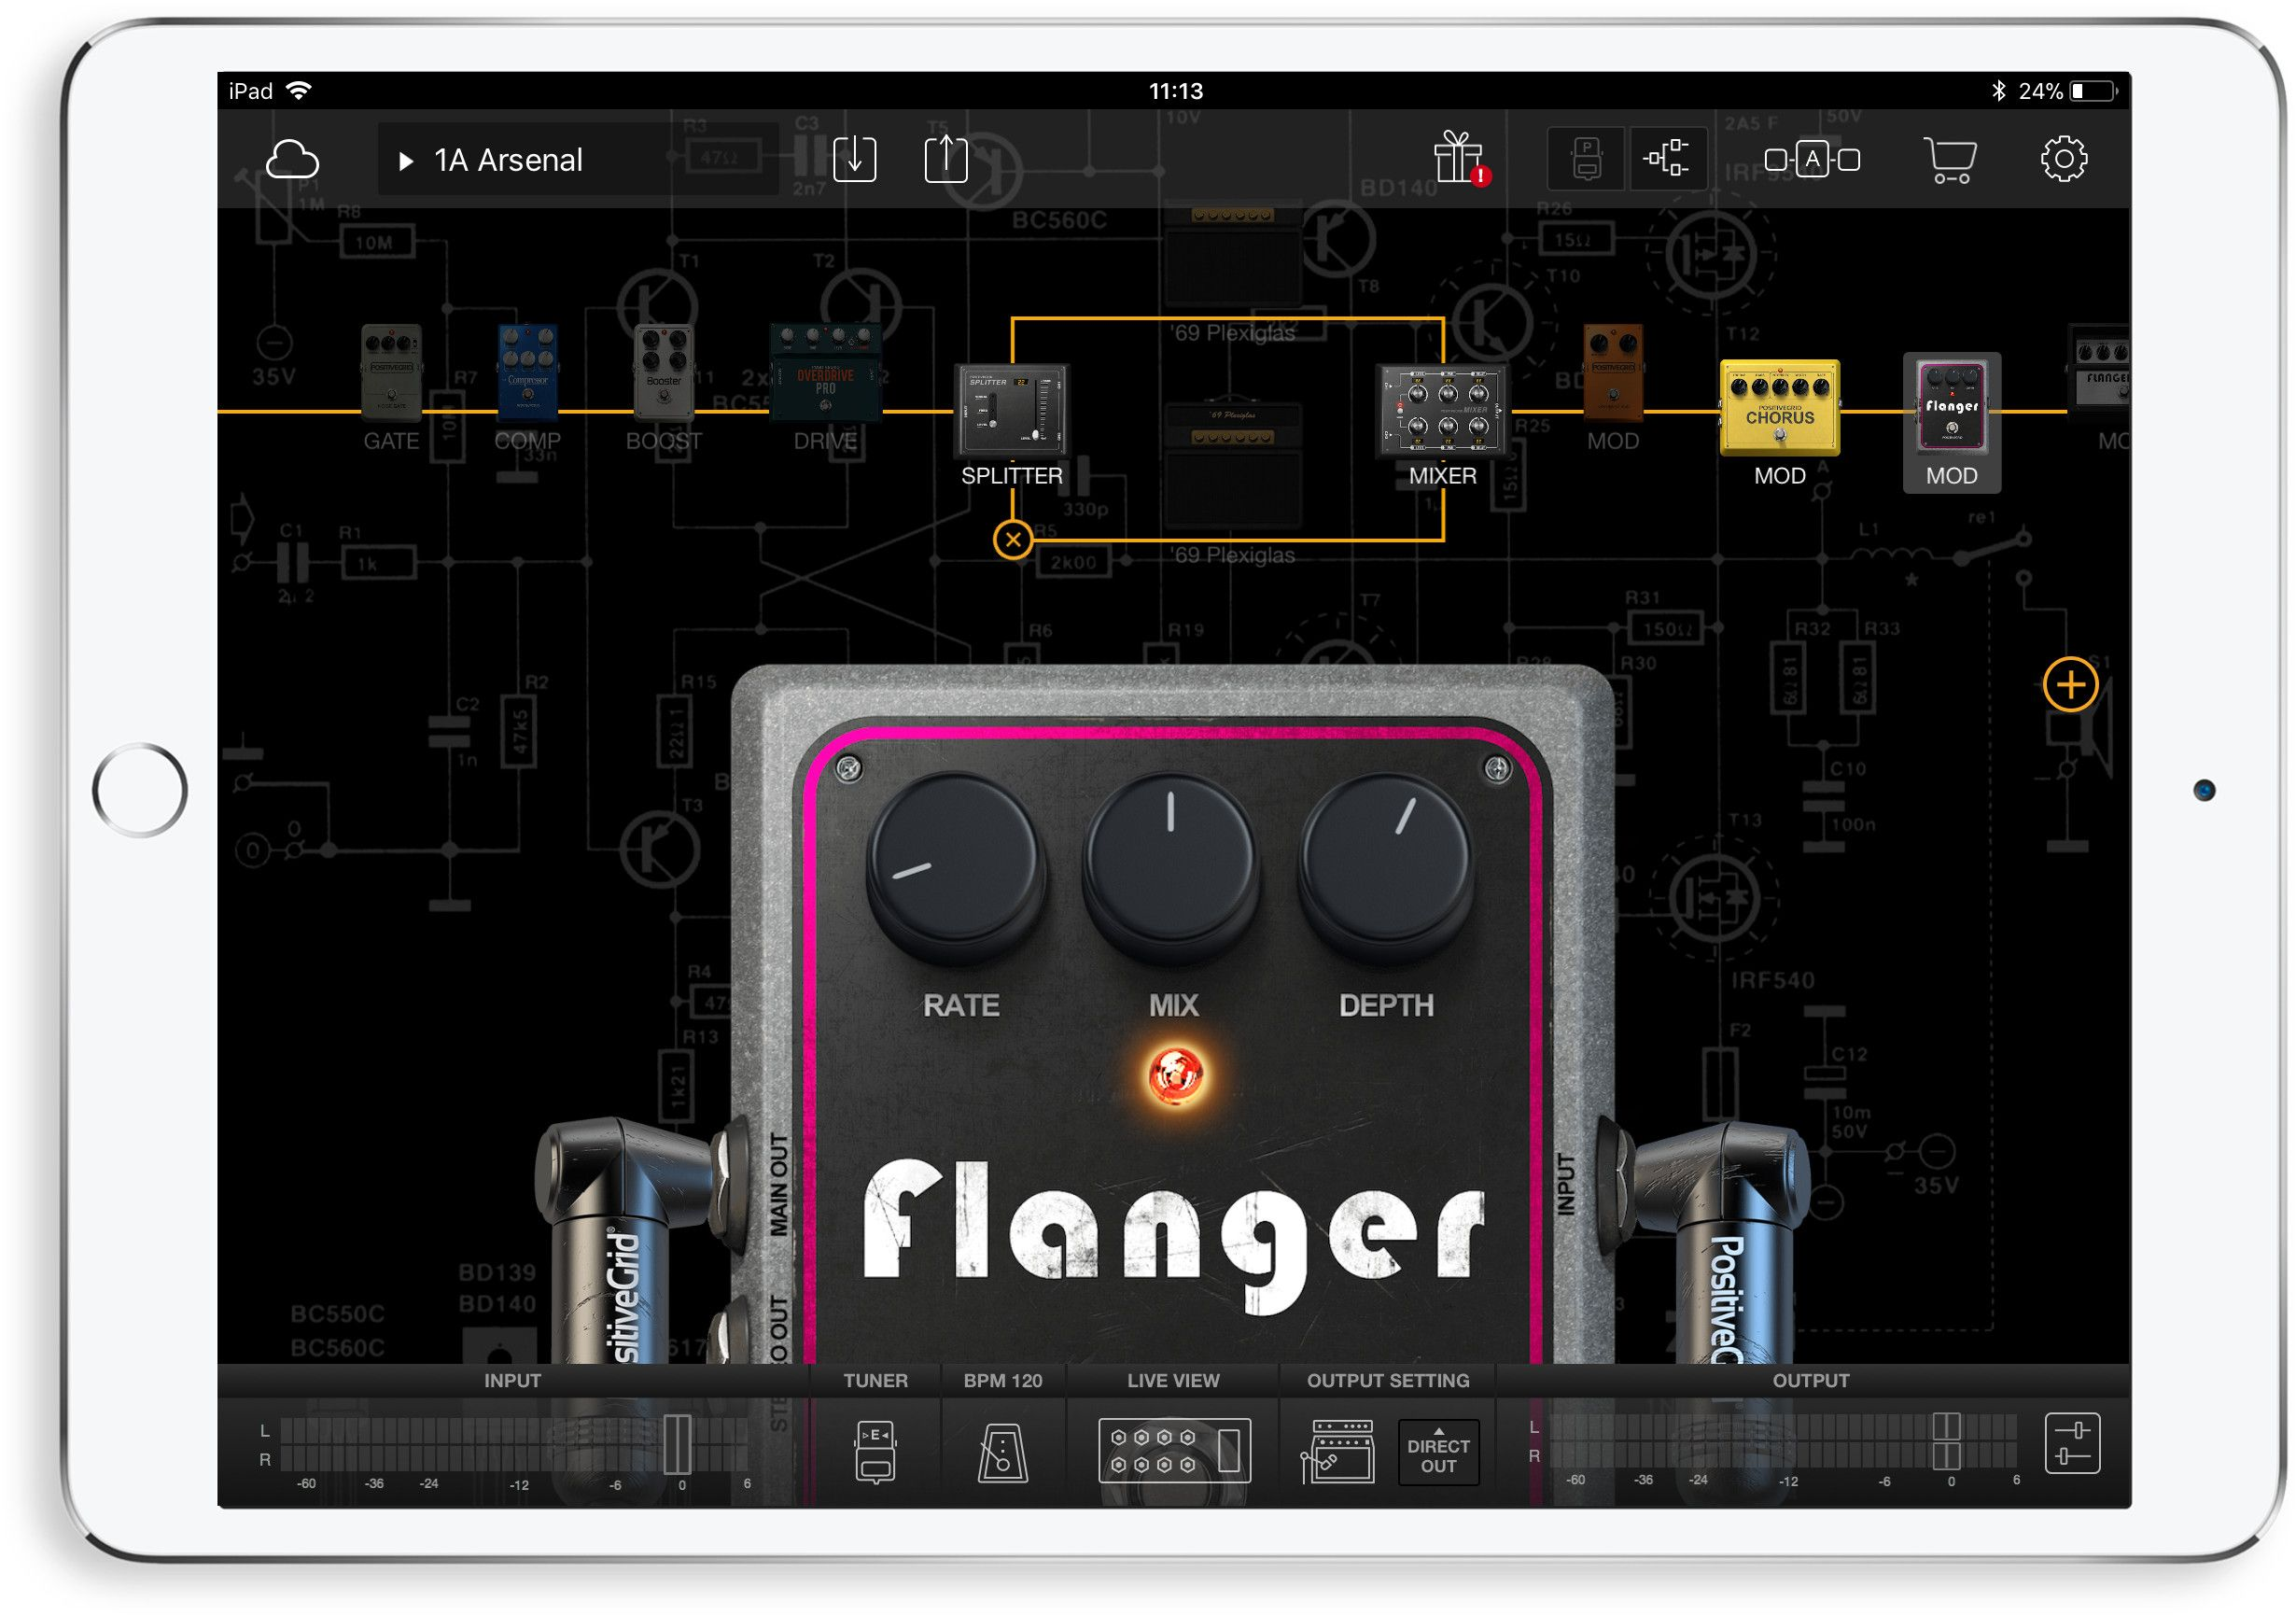 Guitar Pedals for iPad Live Music Set Up